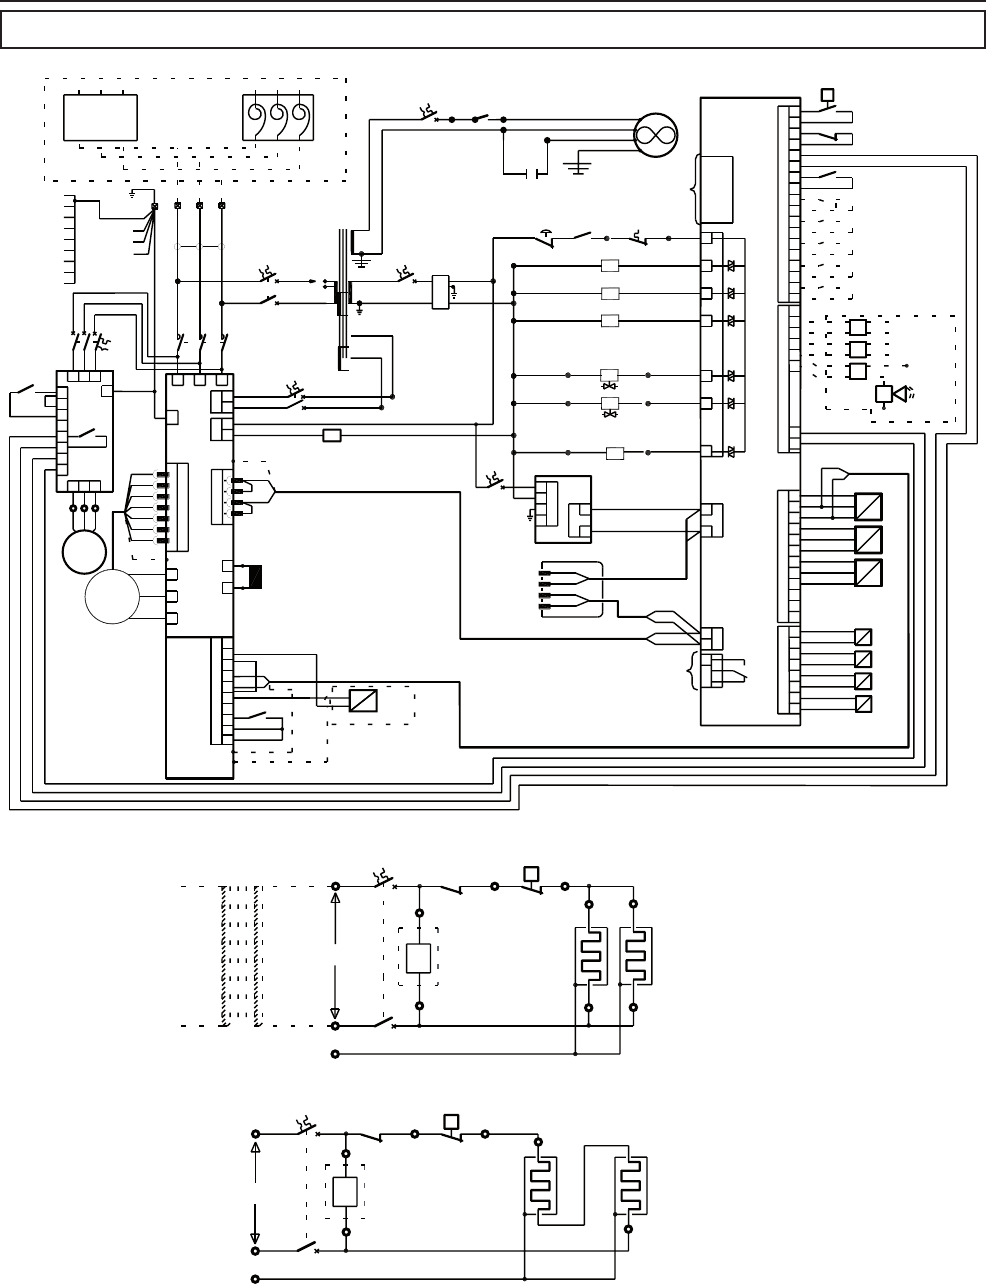 ingersoll rand air compressor wiring diagram Download-Ingersoll Rand Air pressor Wiring Diagram Elegant Beautiful Pressor Wiring Diagram Gallery Electrical and 2-l